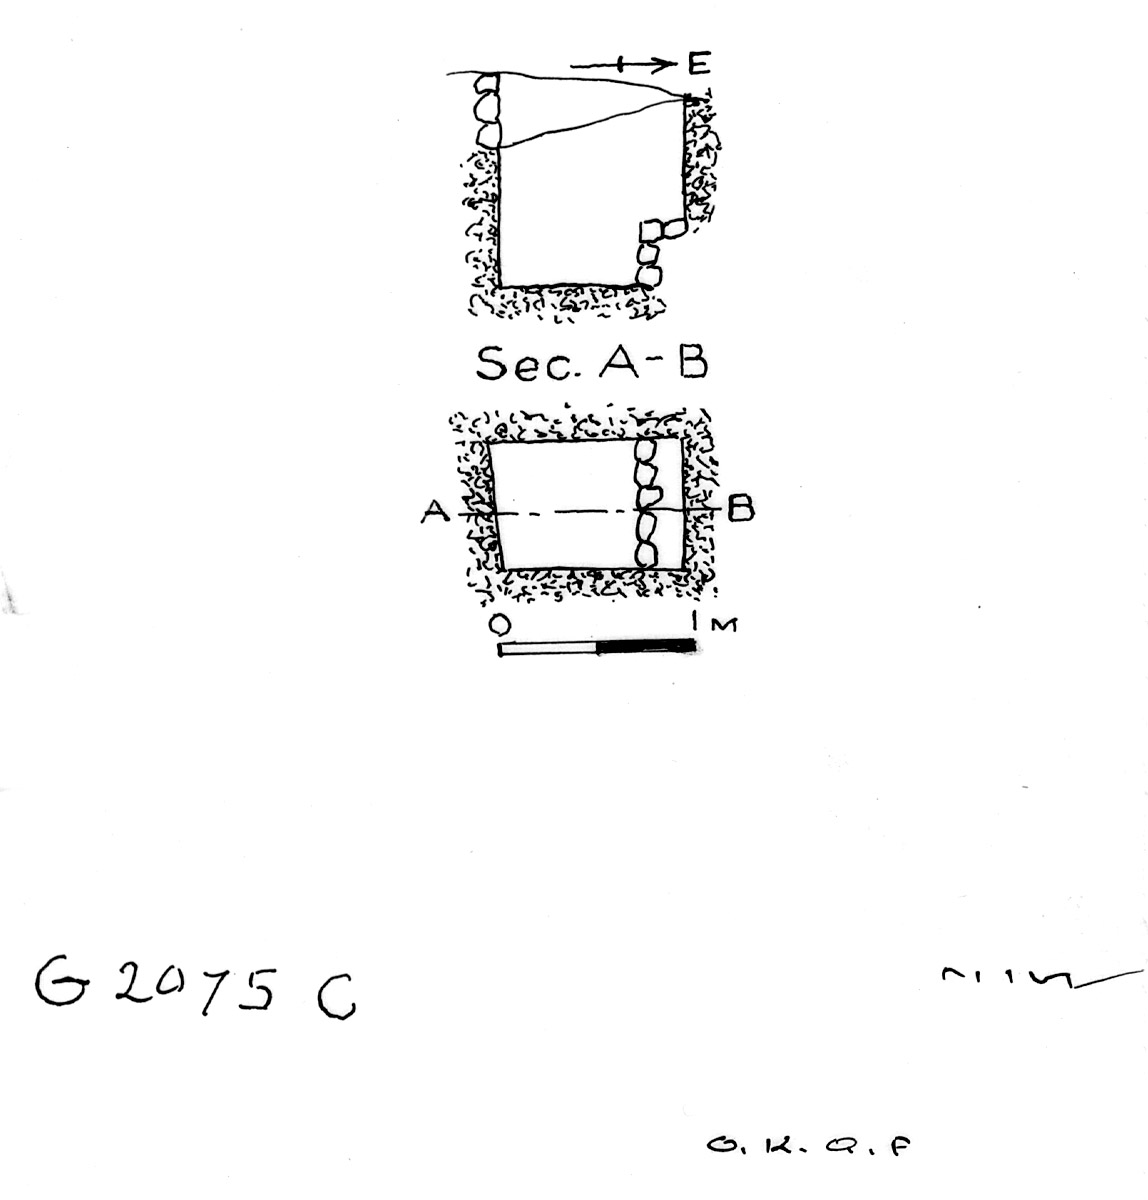 Maps and plans: G 2075, Shaft C